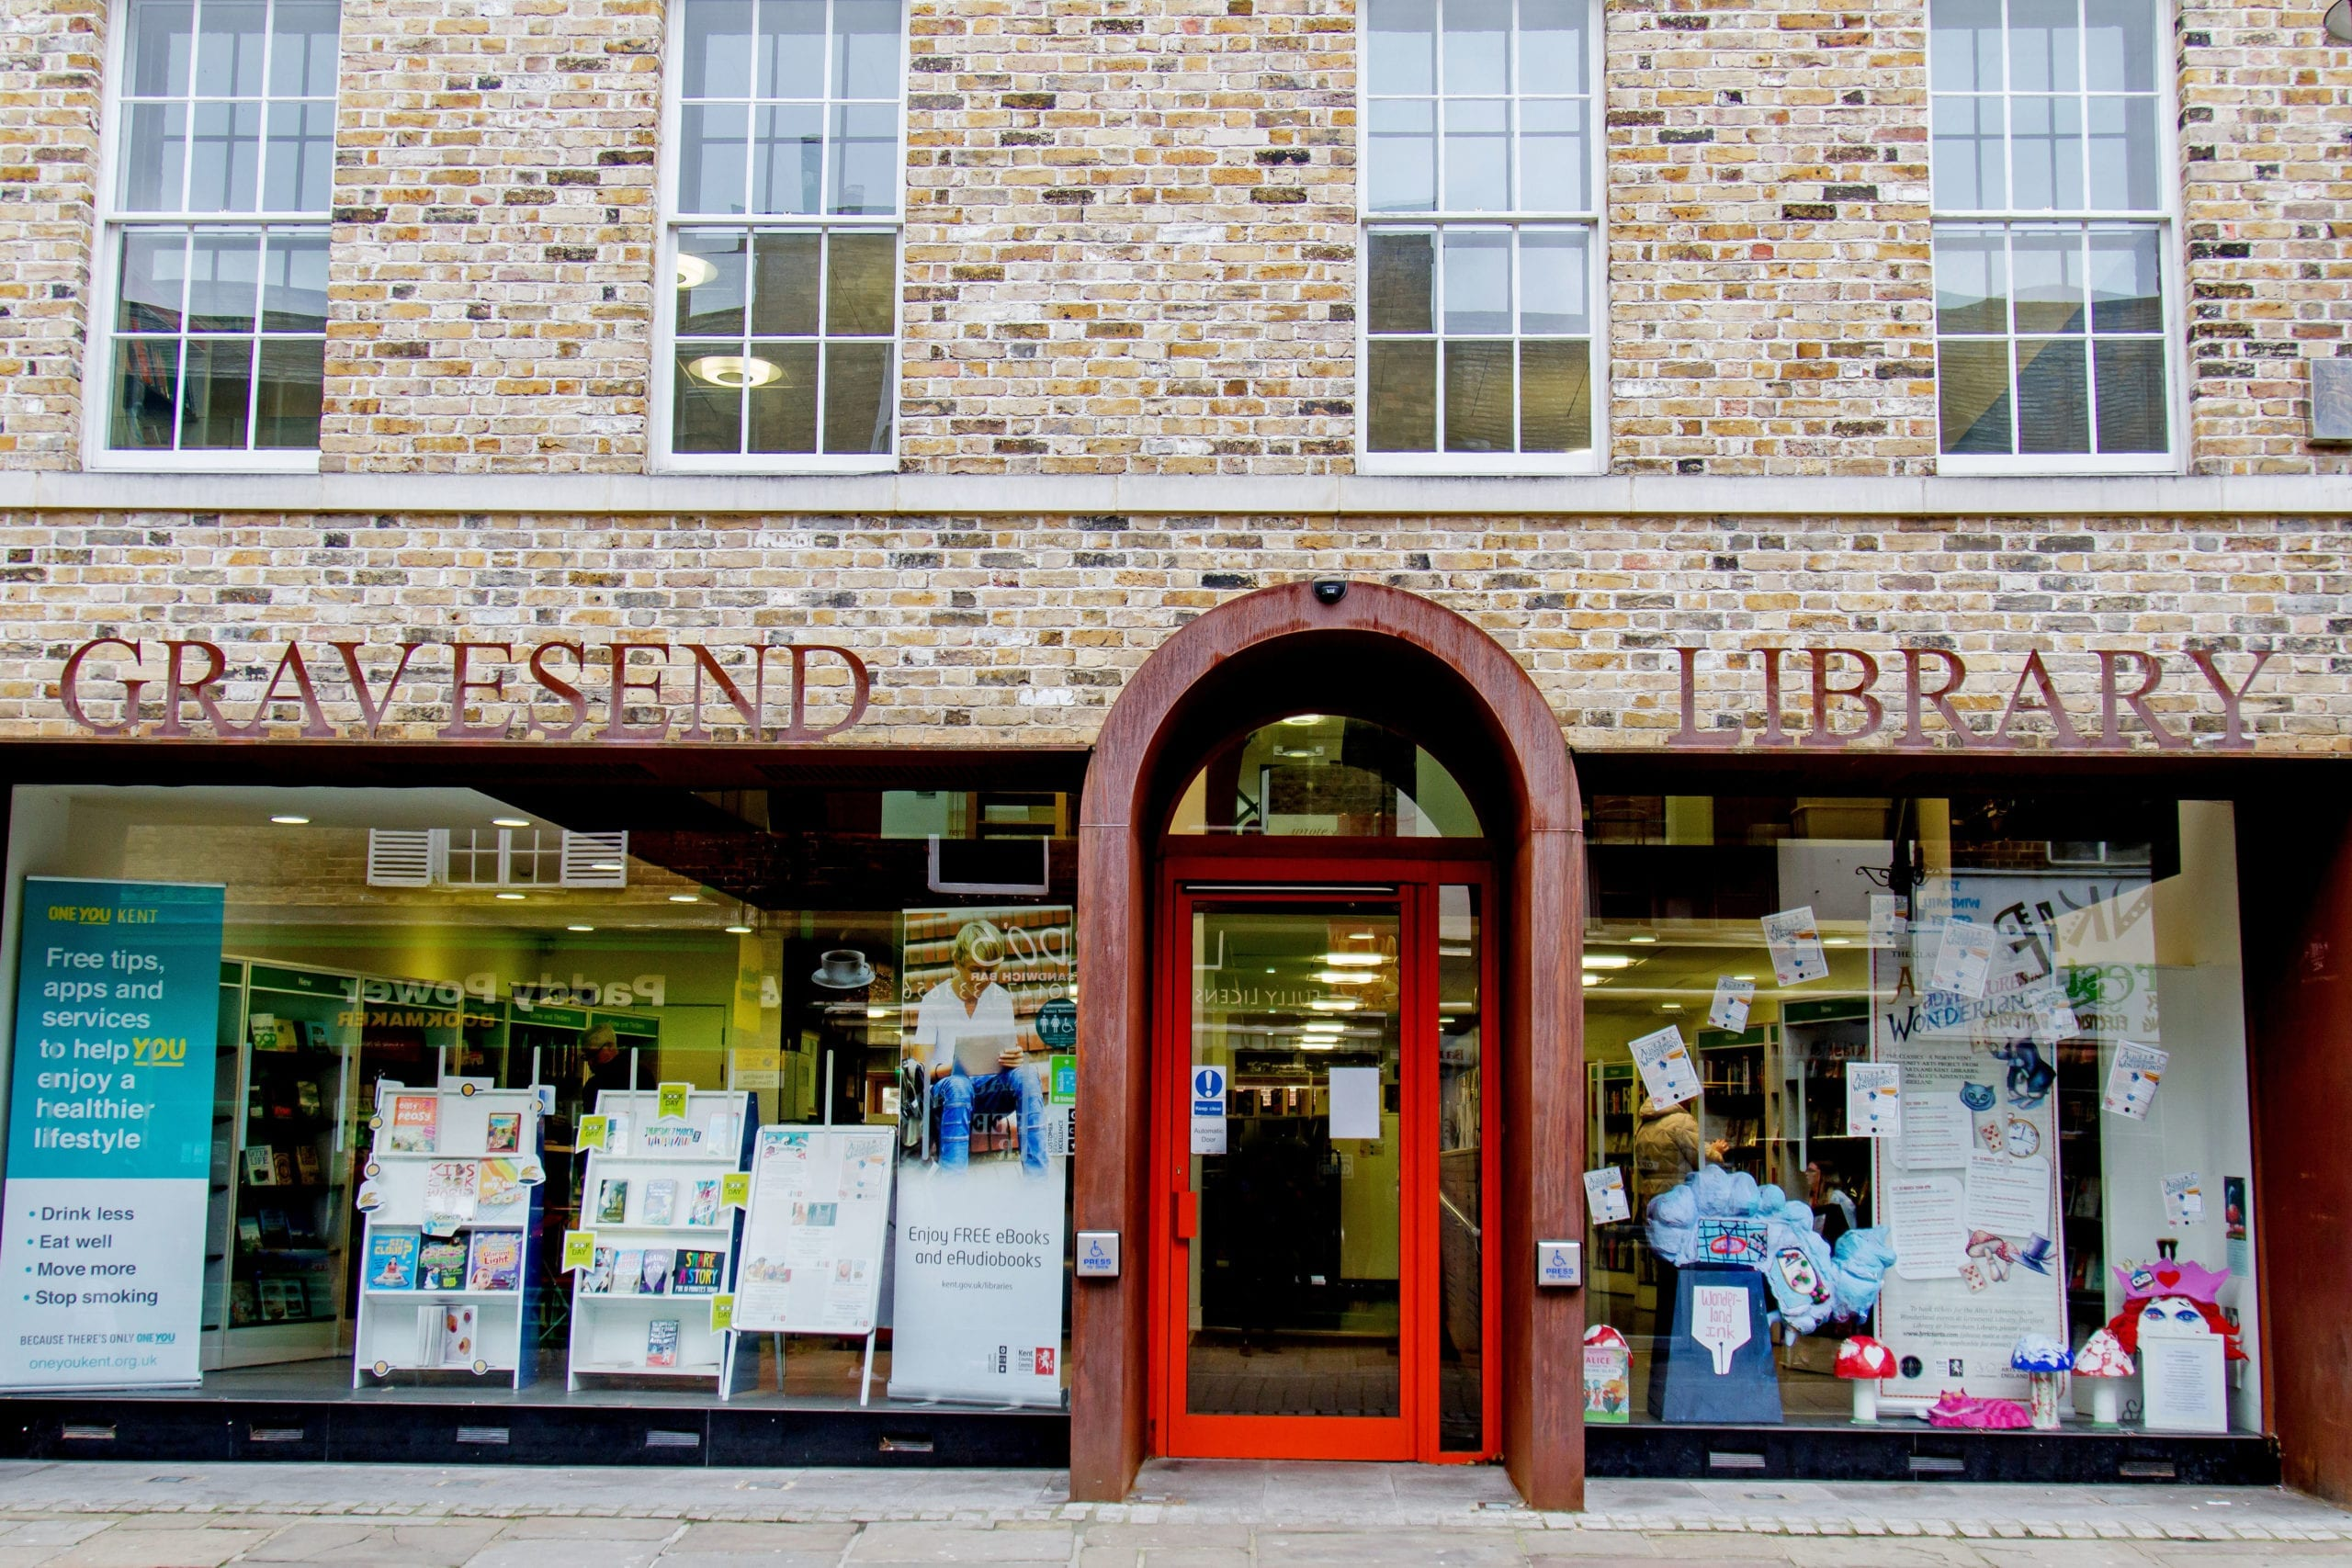 The entrance of Gravesend Library